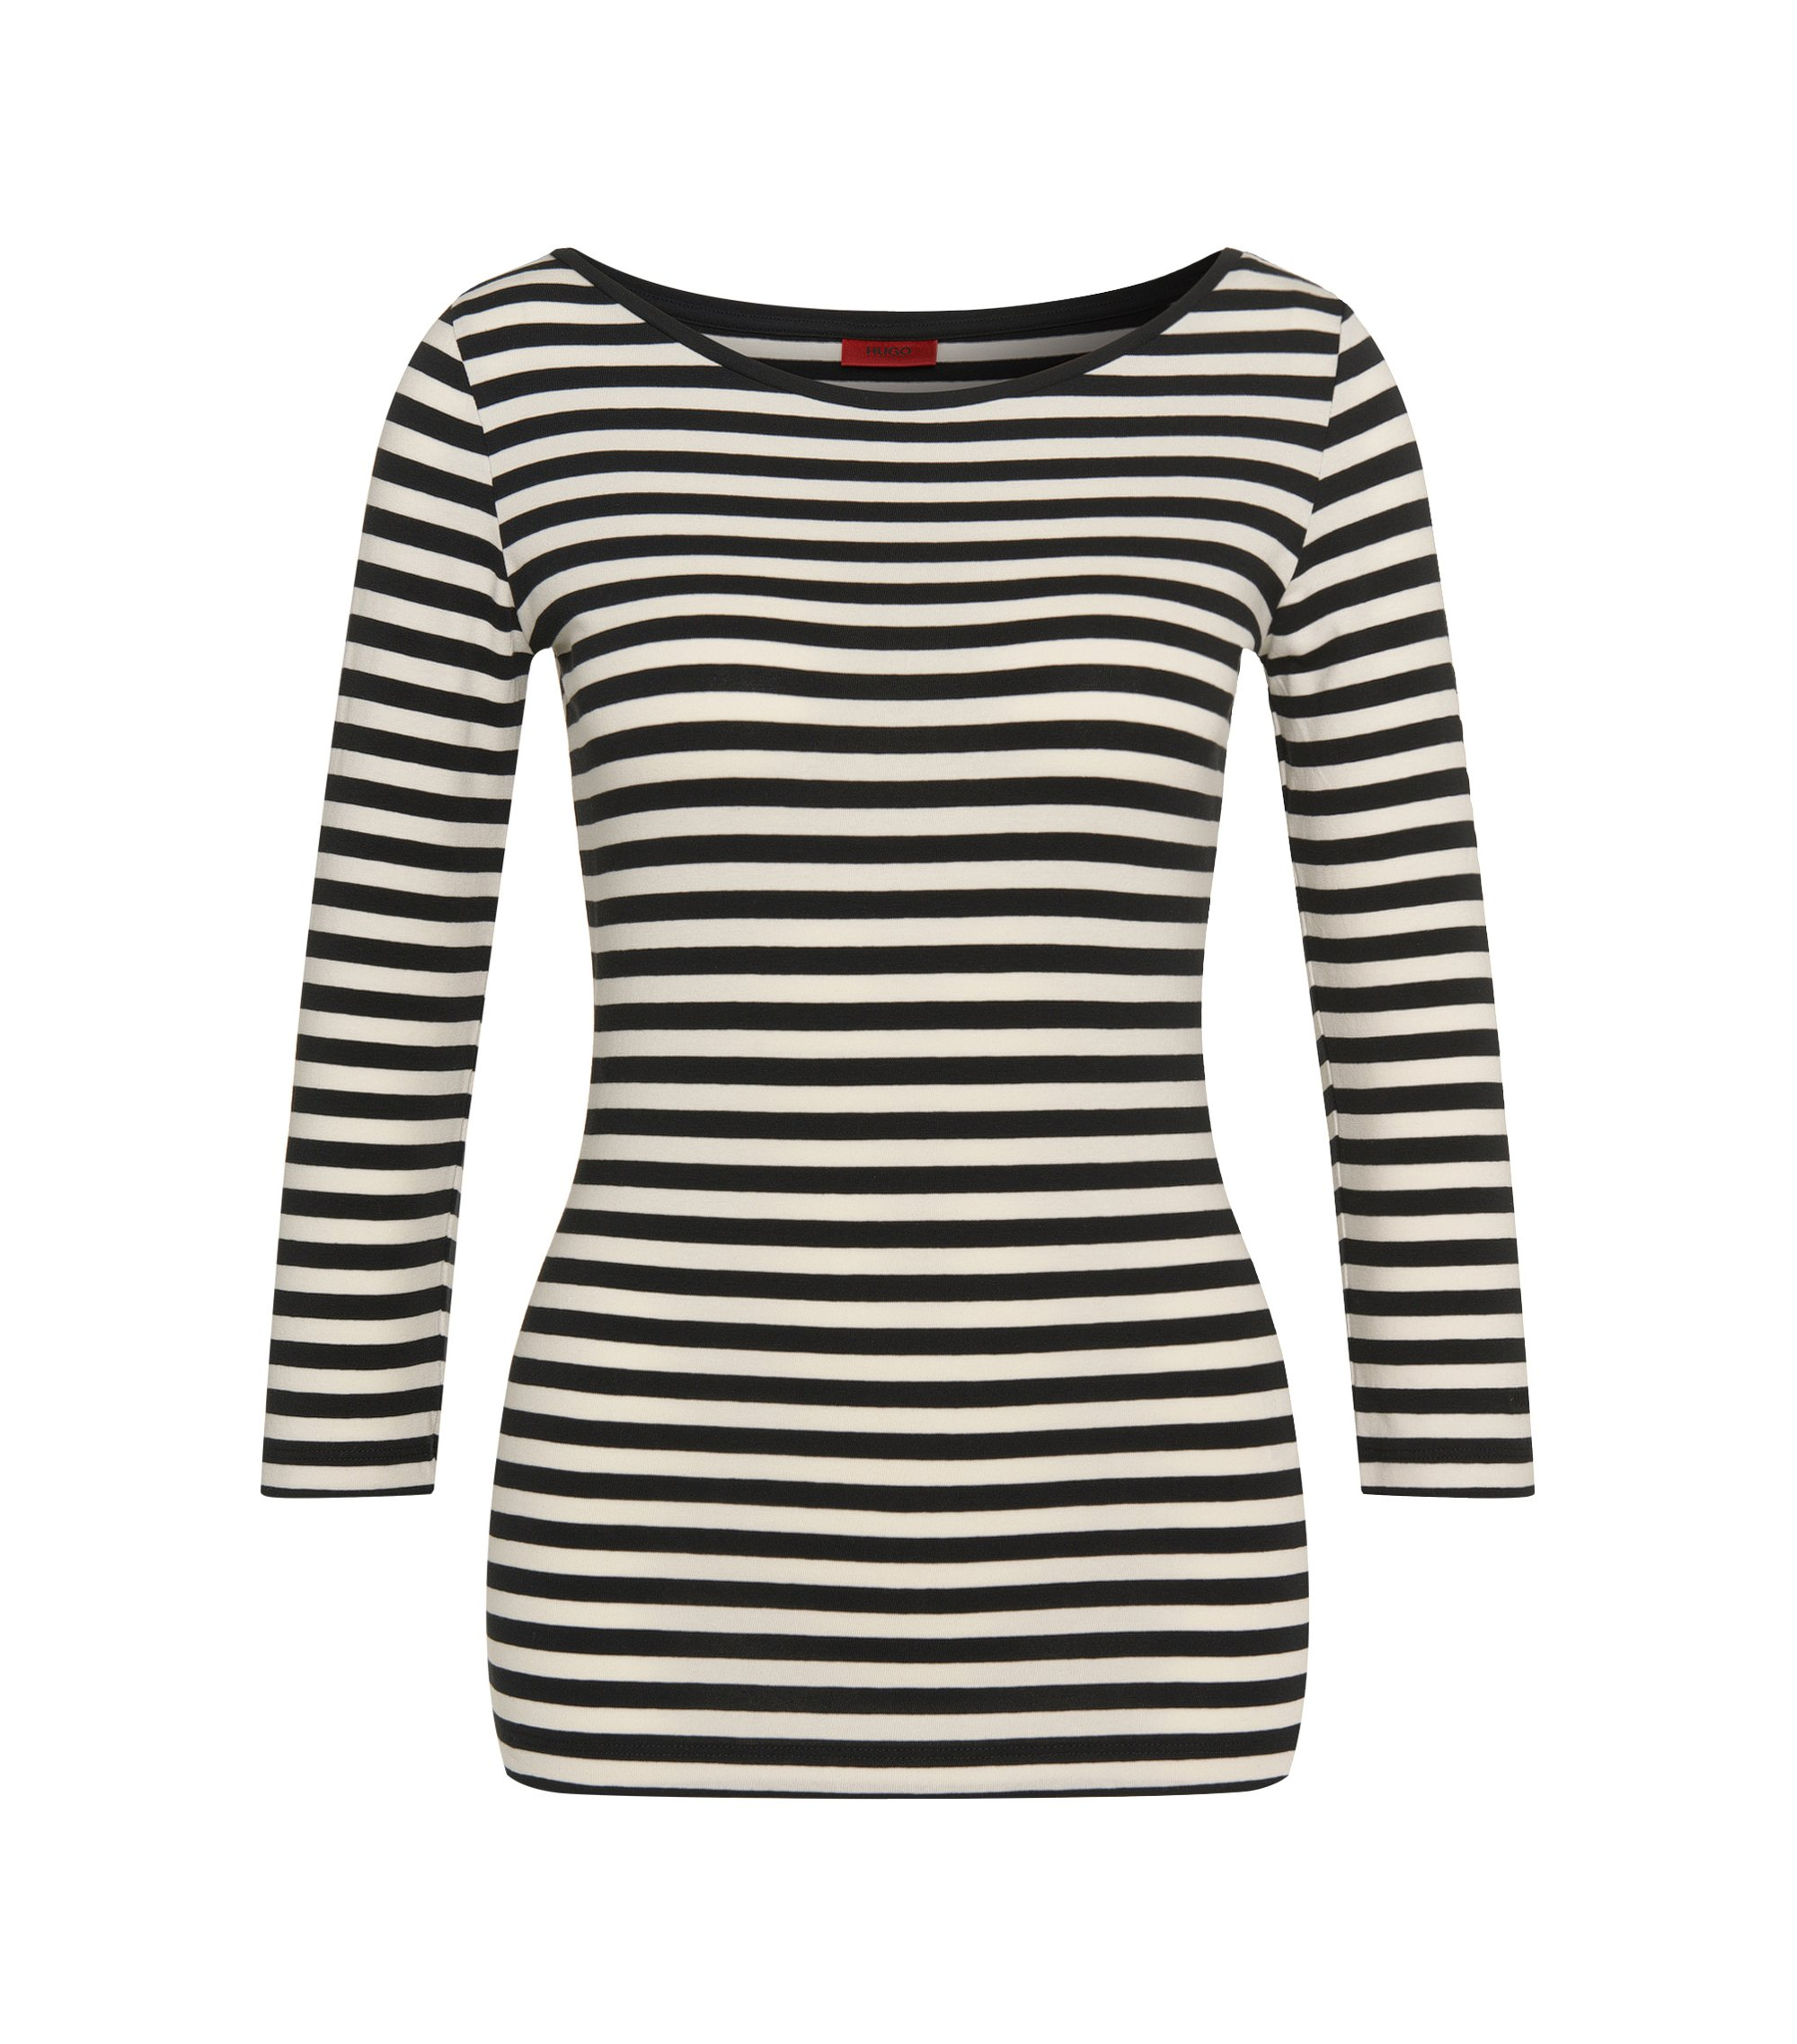 Striped t-shirt in stretch cotton blend: 'Dannala_2', Patterned